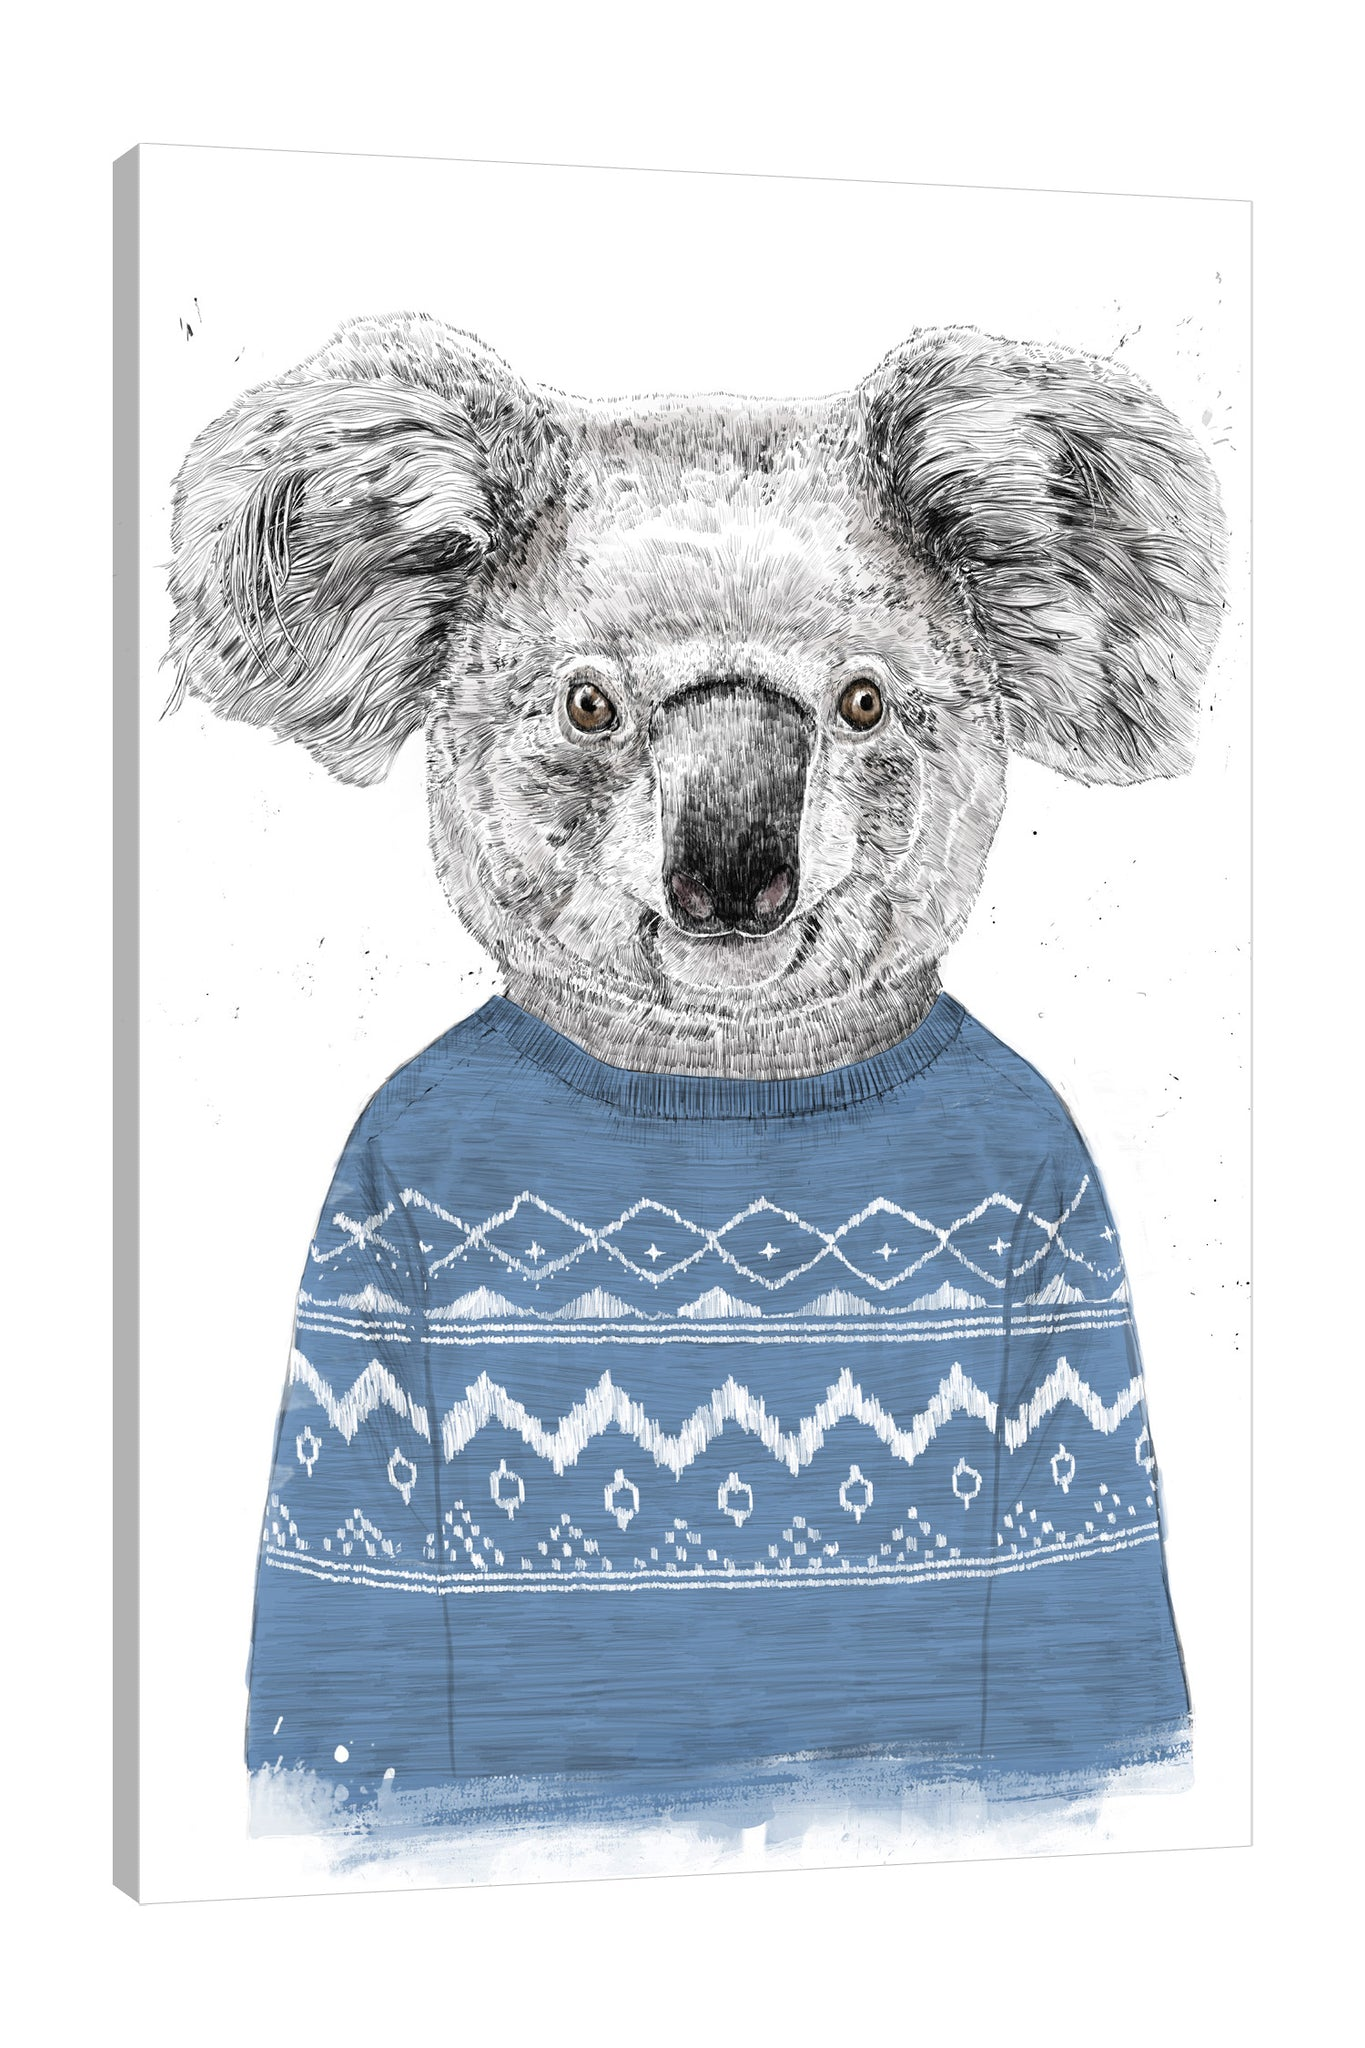 Balazs-Solti,Modern & Contemporary,Animals,Geometric,animals,animal,koalas,koala,sweater,sweaters,blue,pattern,patterns,white,diamonds,diamond,shapes,shape,triangle,triangles,Turquoise Blue,Gray,Blue,Purple,Charcoal Gray,Coral Pink,White